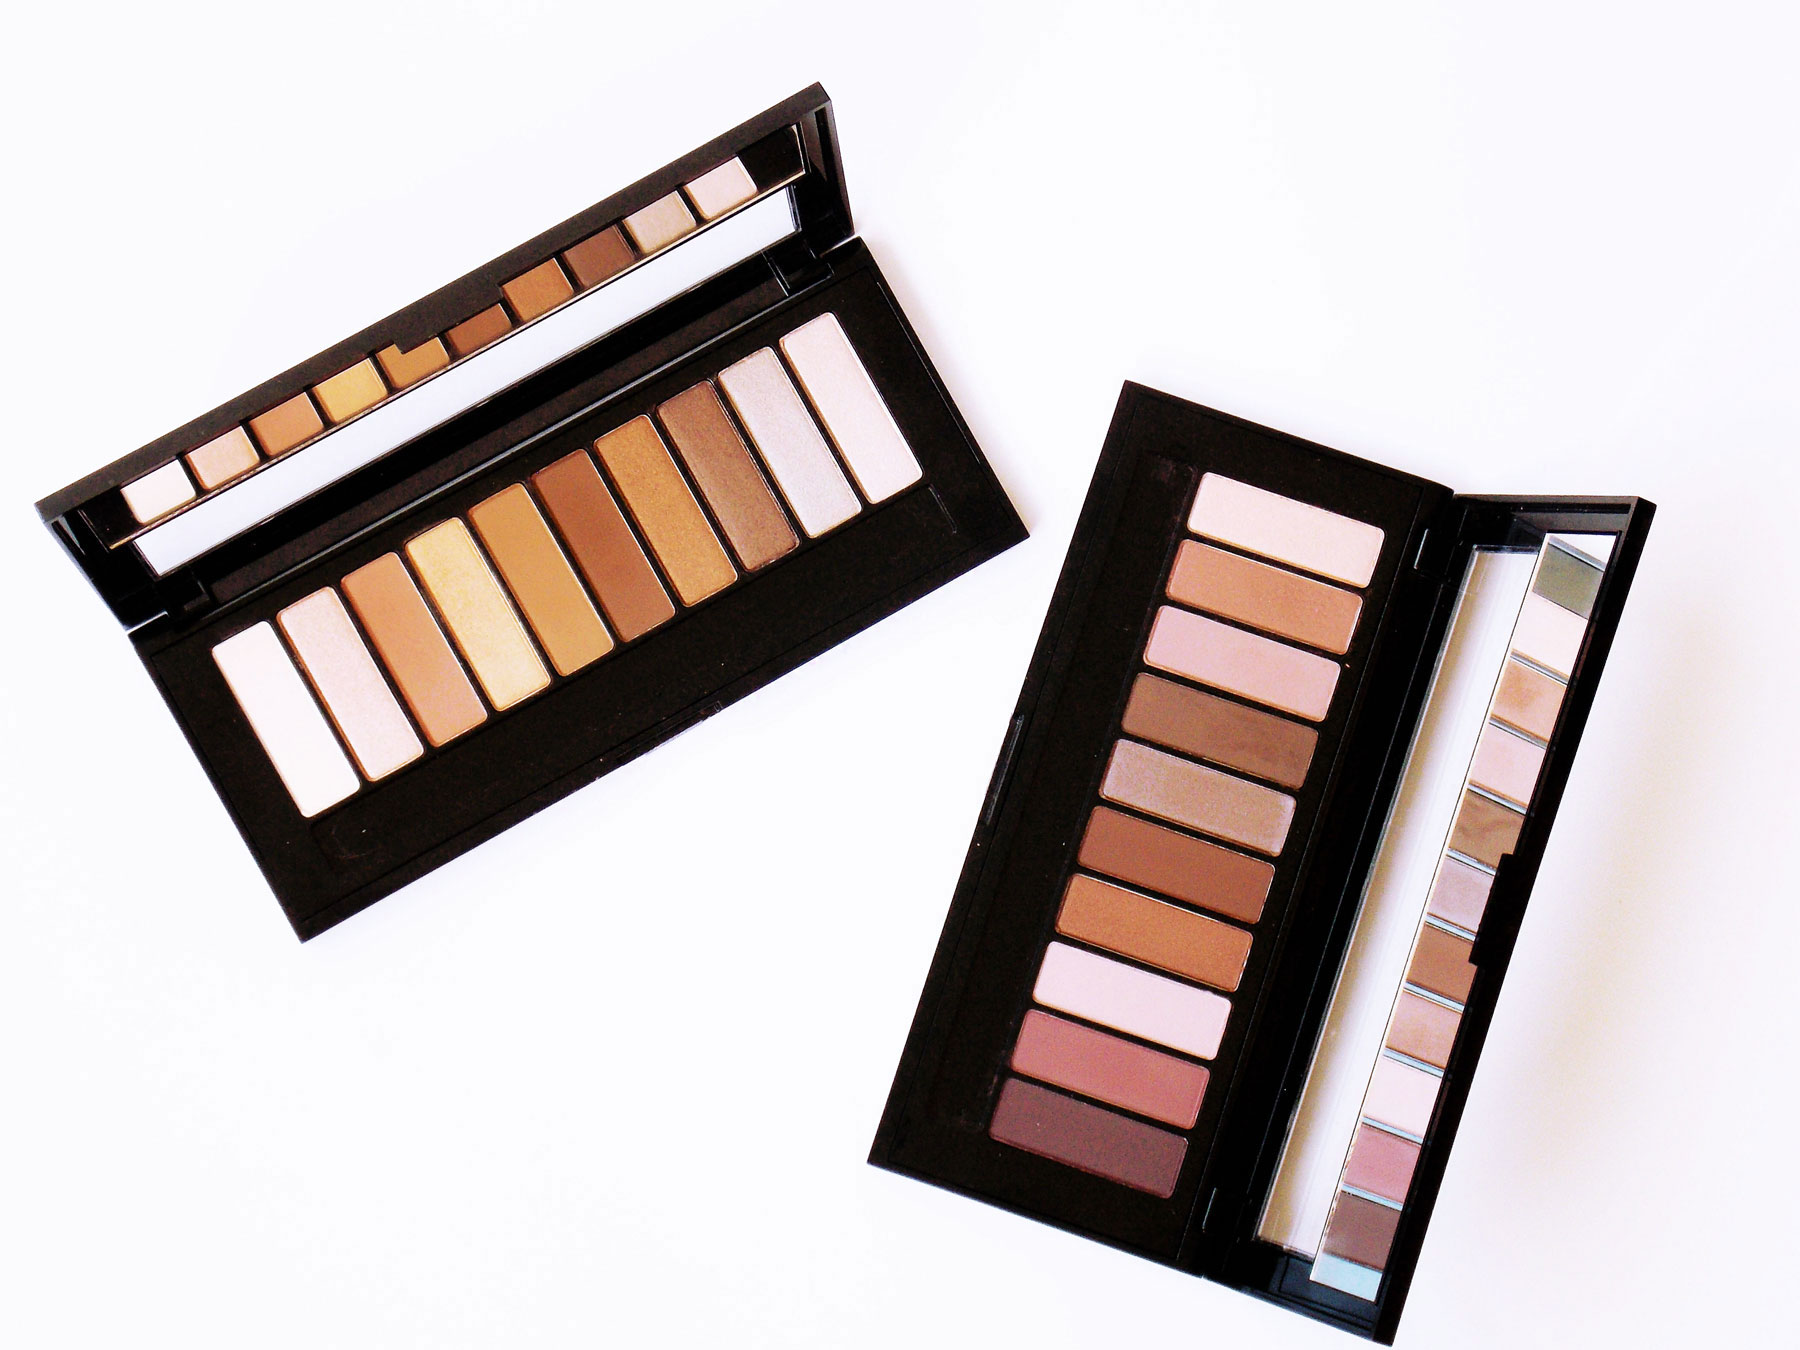 New Loreal La Palette Nude 1 and Nude 2 Review and Swatches